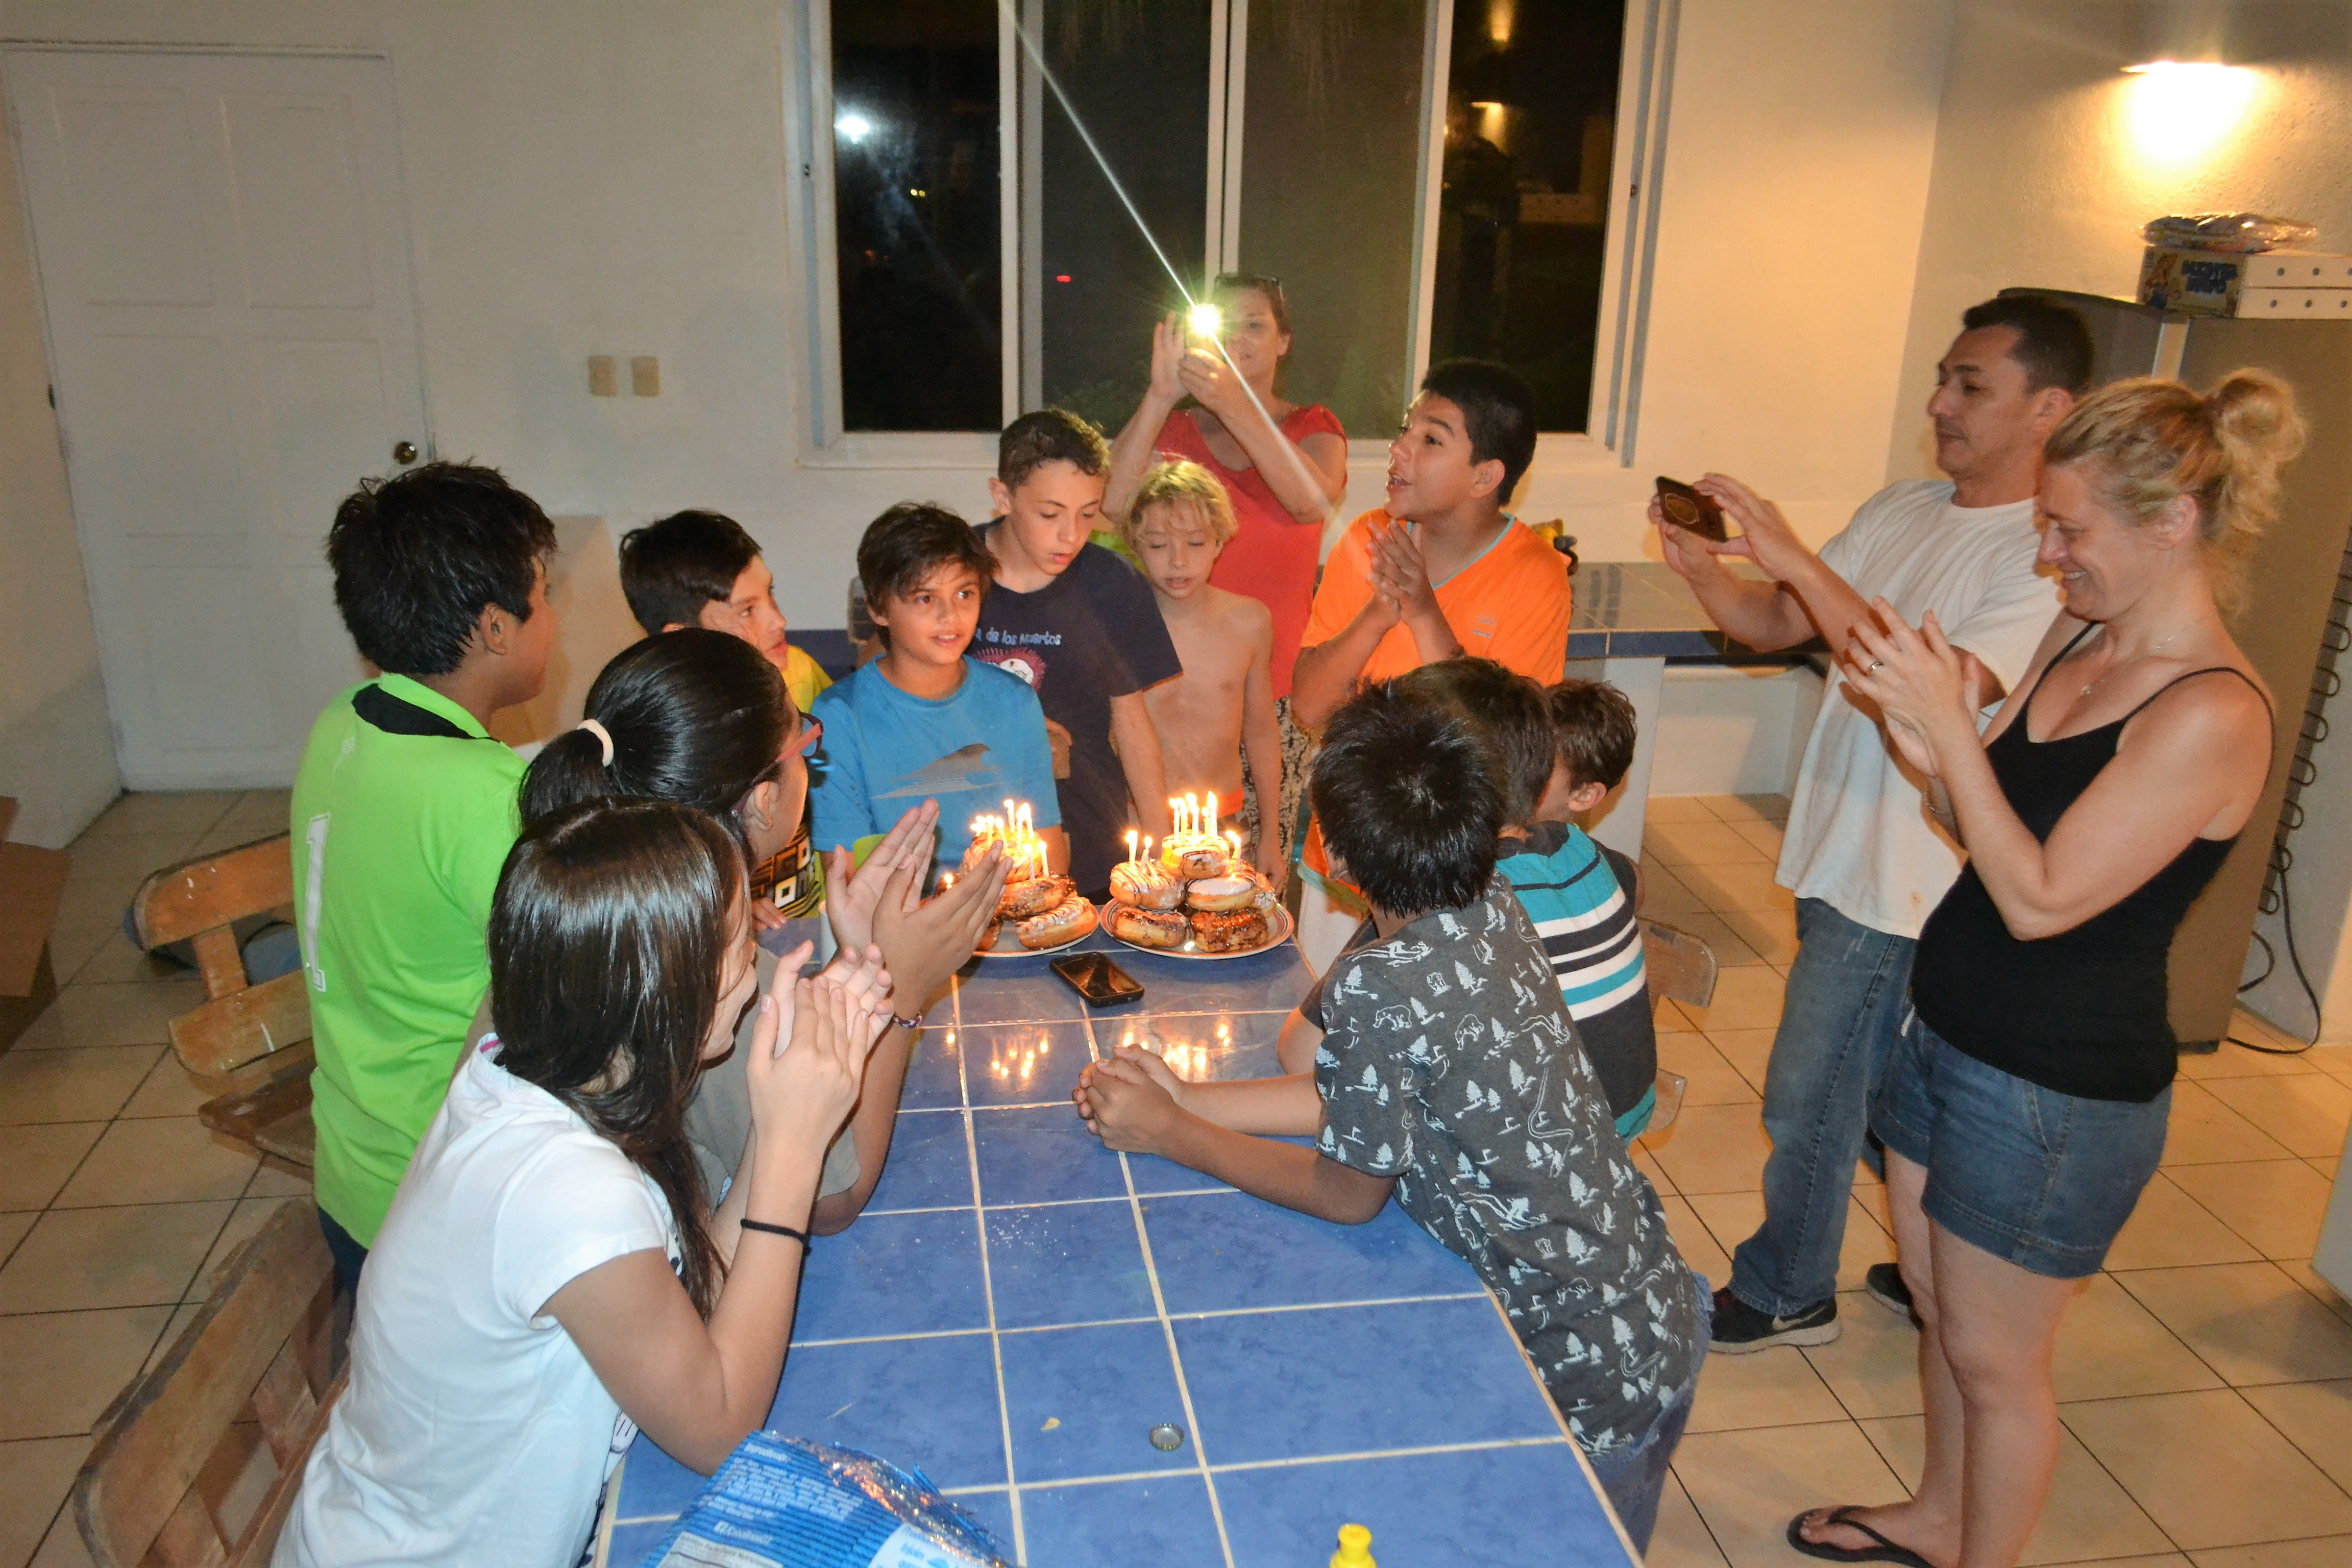 celebrating my son's 13th birthday party at the beach house